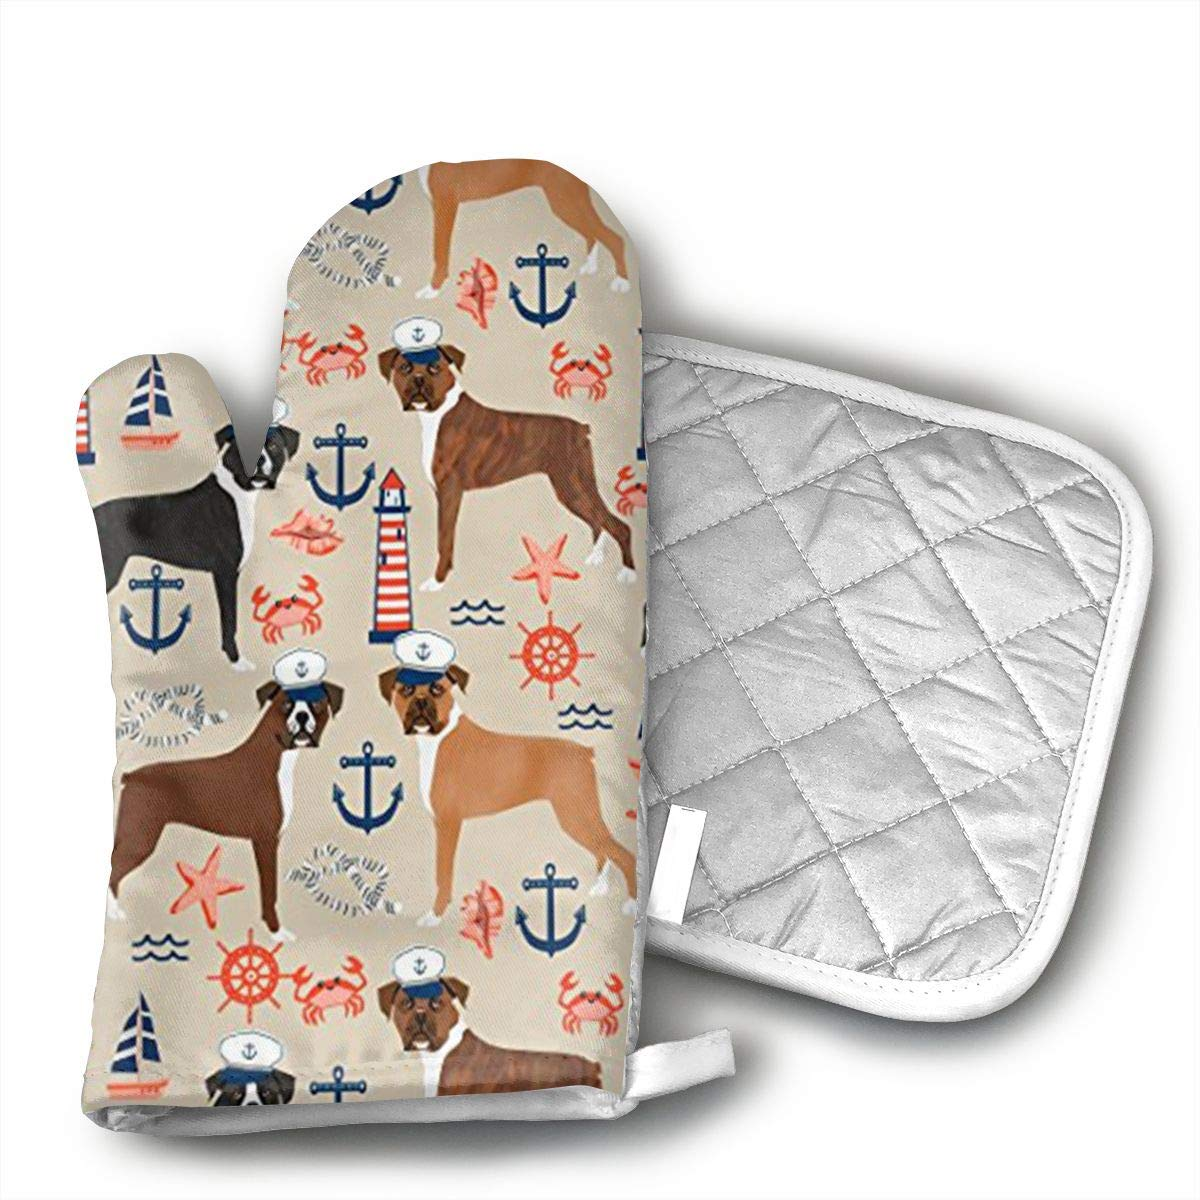 QEDGC Boxer Nautical Summer Tropical Dogs Oven Hot Mitts Professional Heat Resistant Pot Holder & Baking Gloves